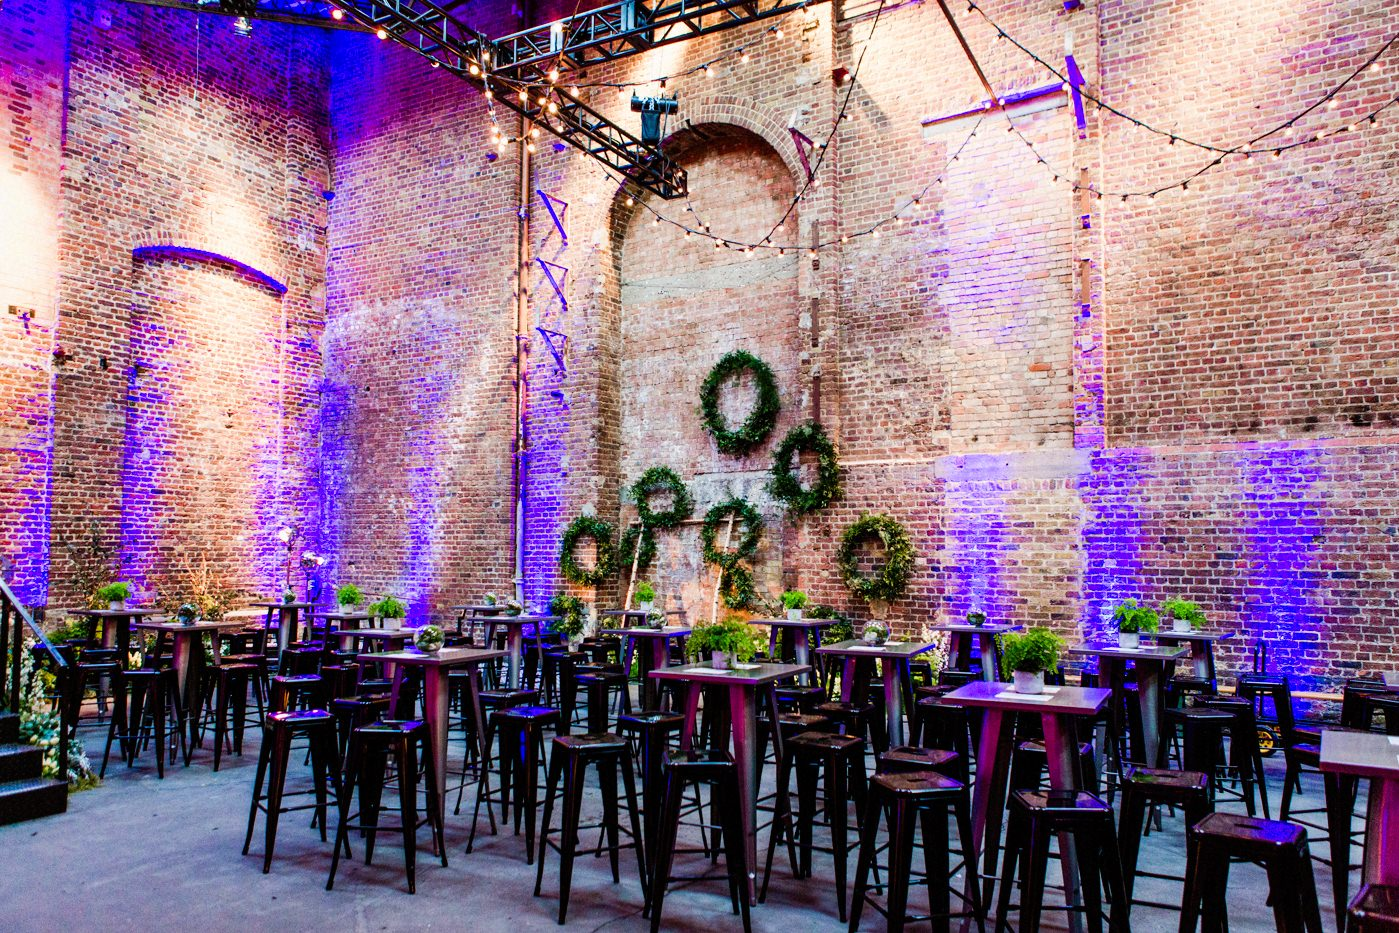 Incredible warehouse space at Village Underground in London set up for dinner with bunting and exposed brick walls